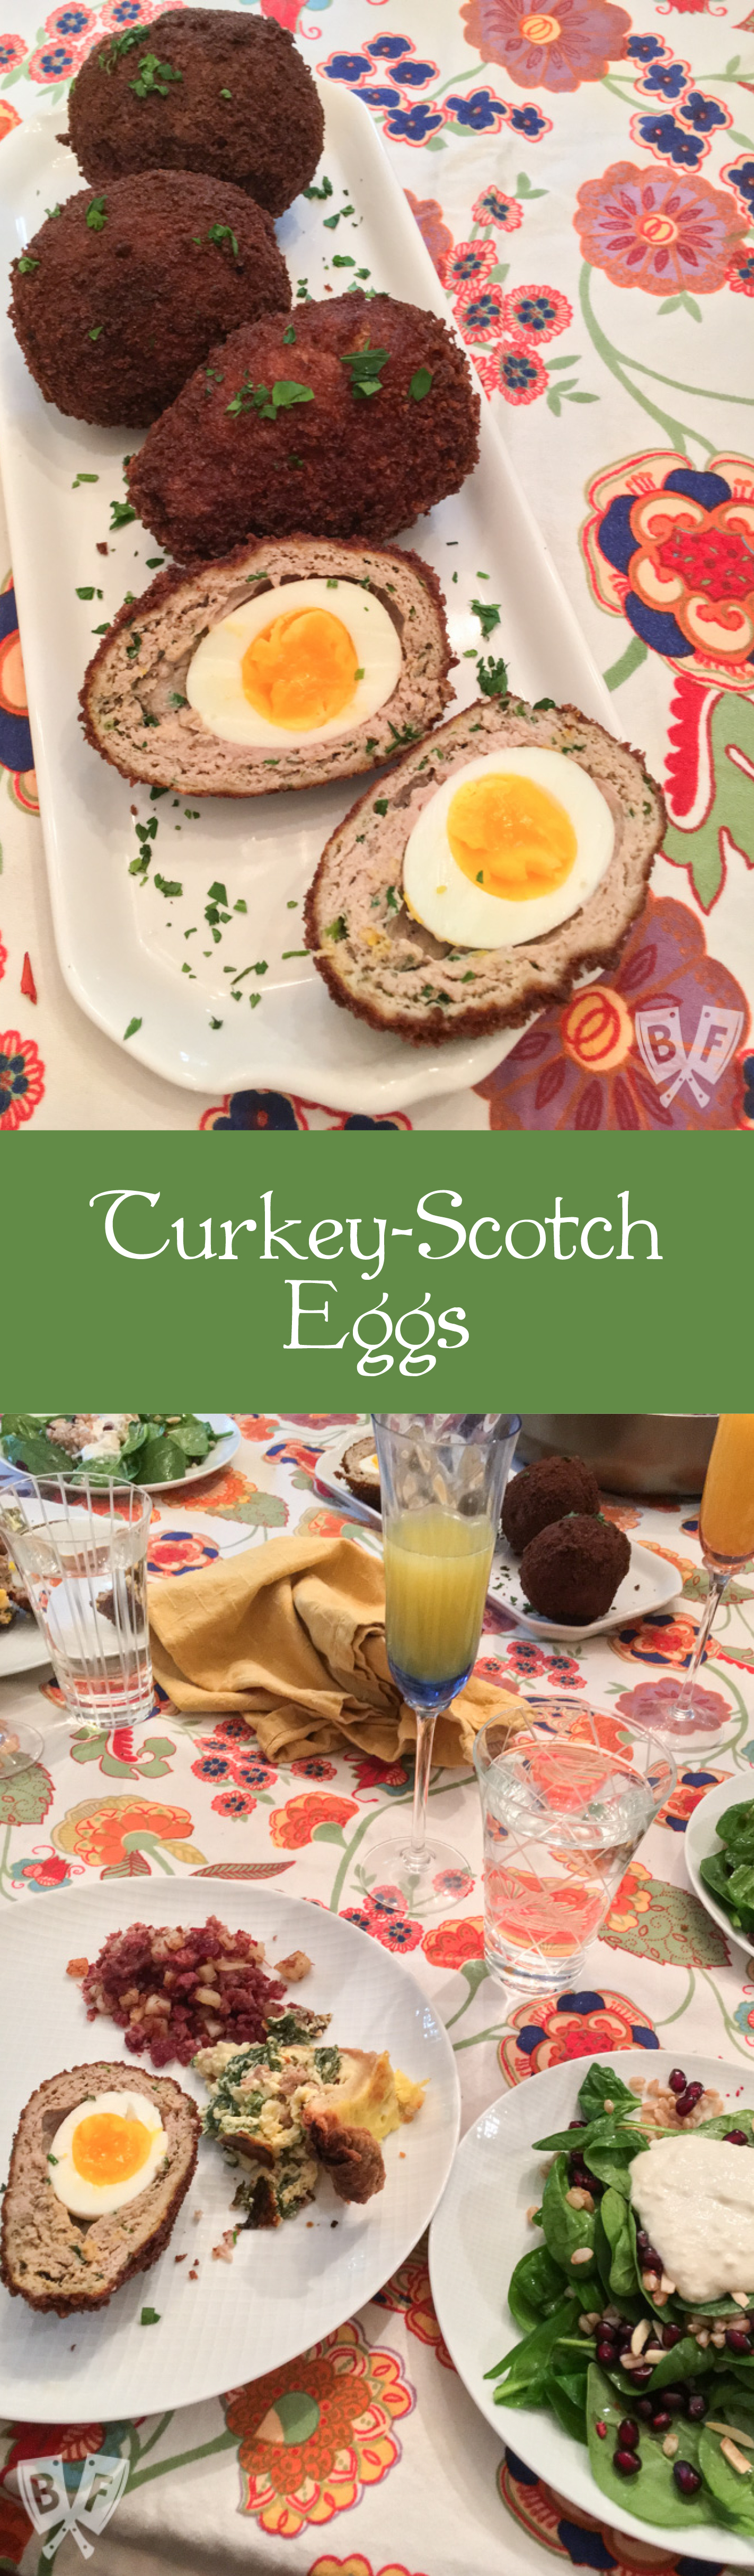 Turkey-Scotch Eggs: A panko-crusted homemade sausage mix makes the perfect crispy coating for this beautifully decadent English egg recipe.